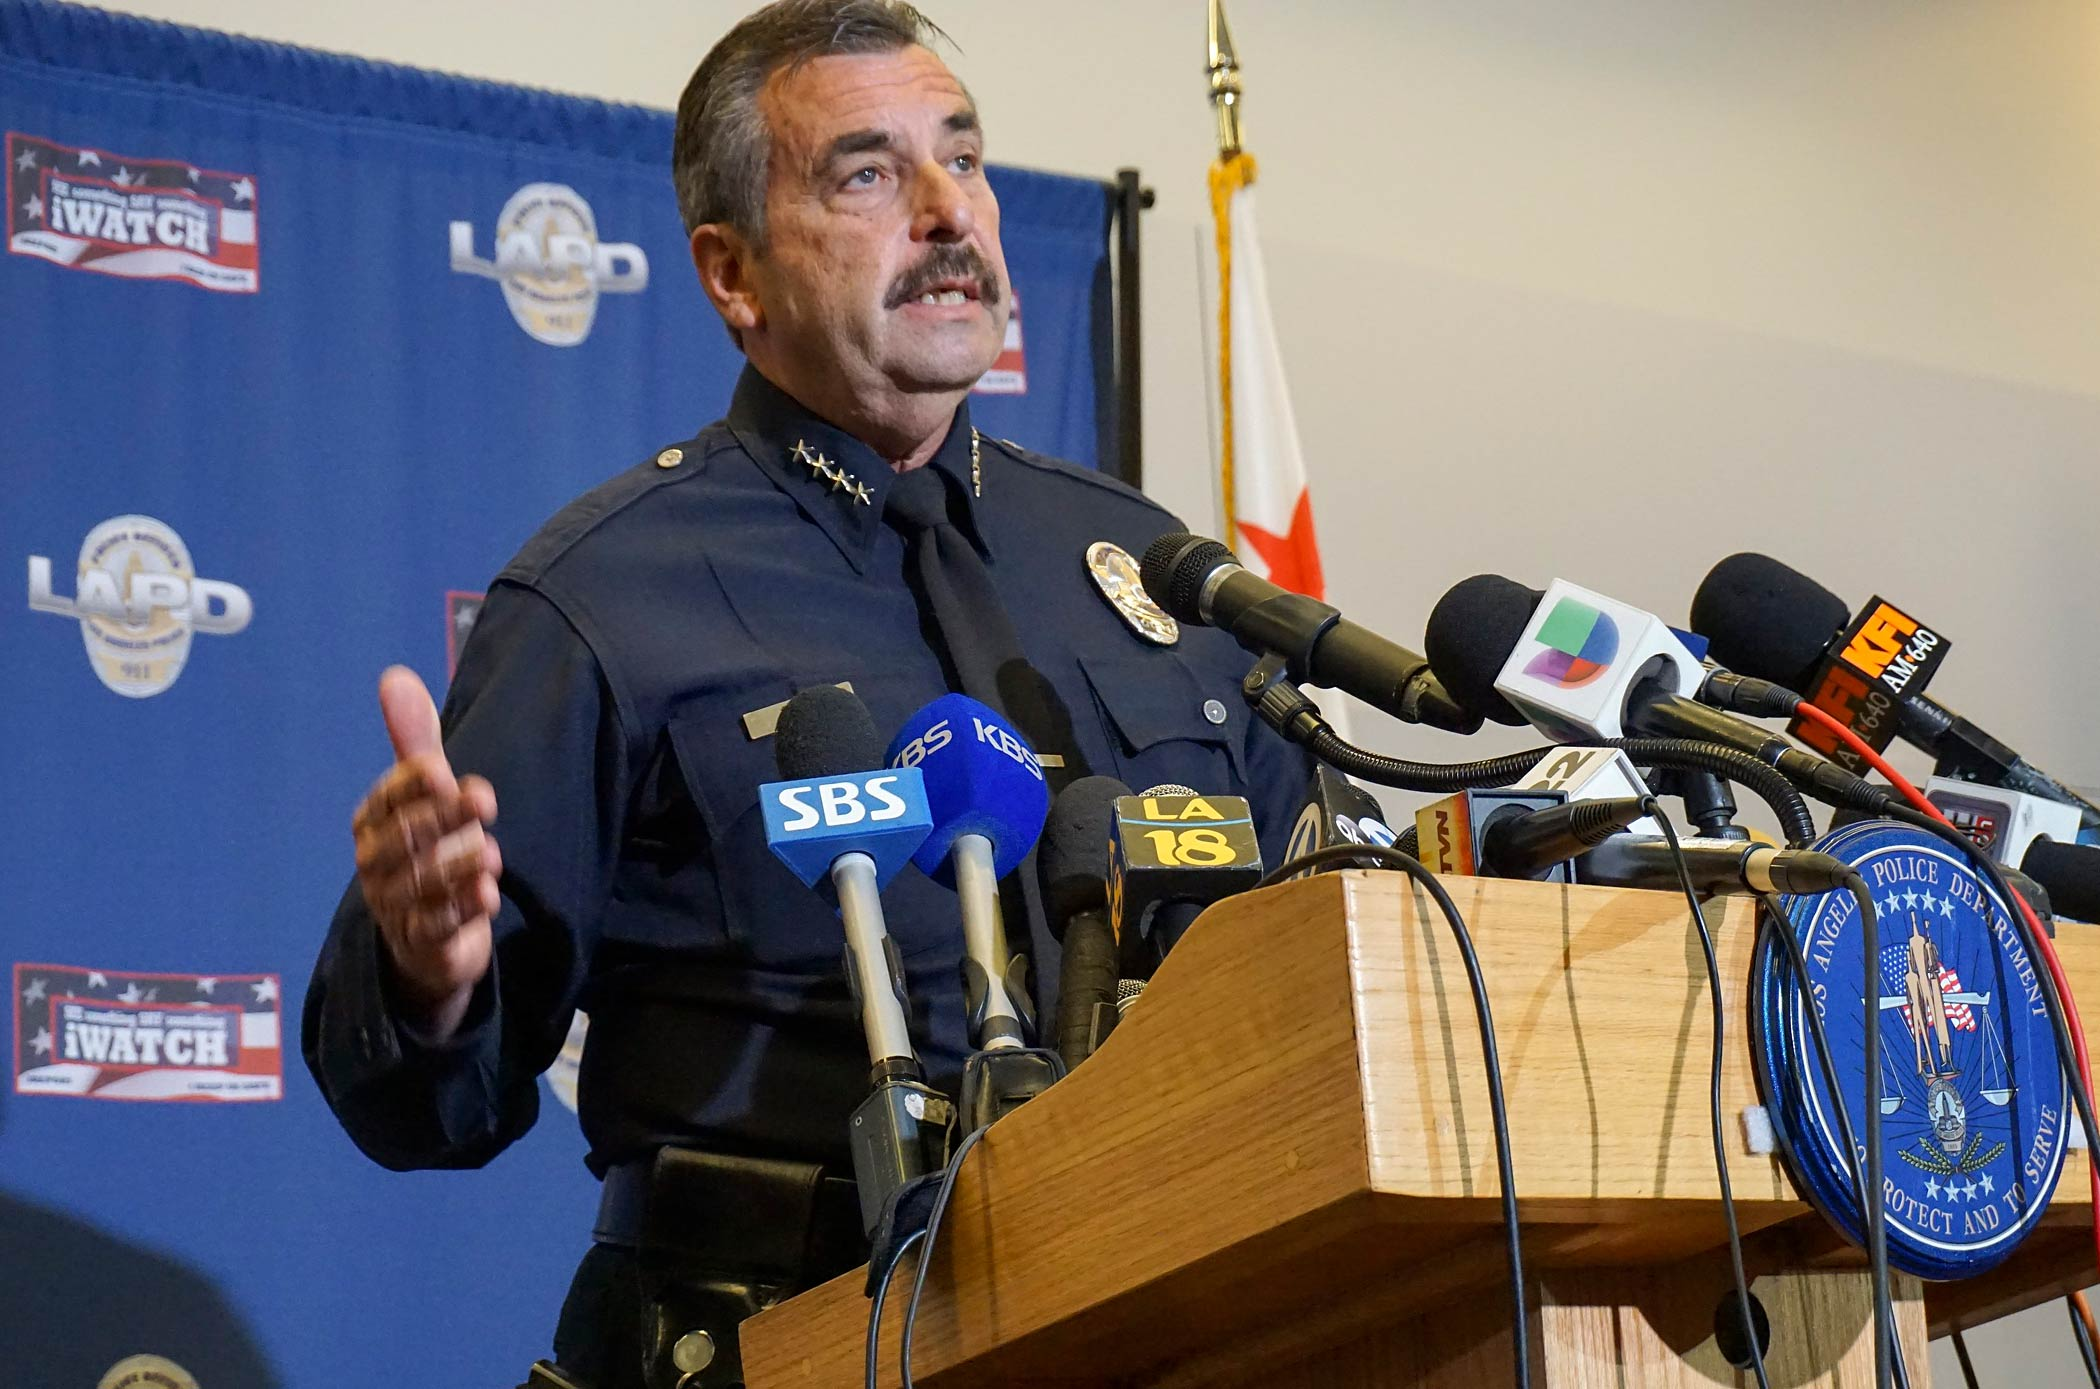 Los Angeles Police Chief Charlie Beck comments on the shooting of a homeless man on Skid Row of  Los Angeles, at a news conference at police headquarters on March 2, 2015.